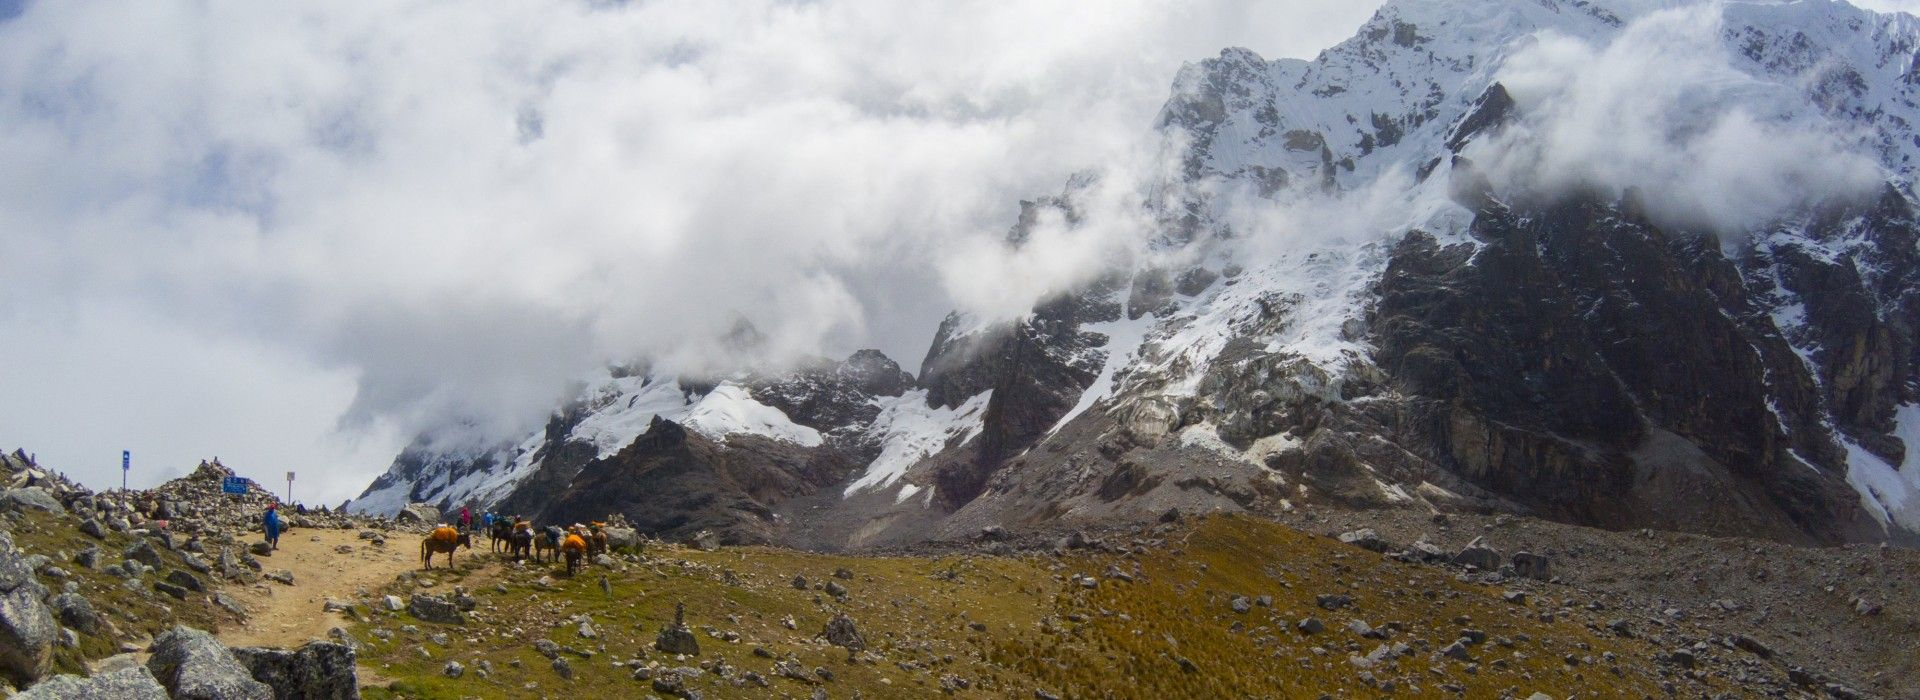 Trekking Tours in South America